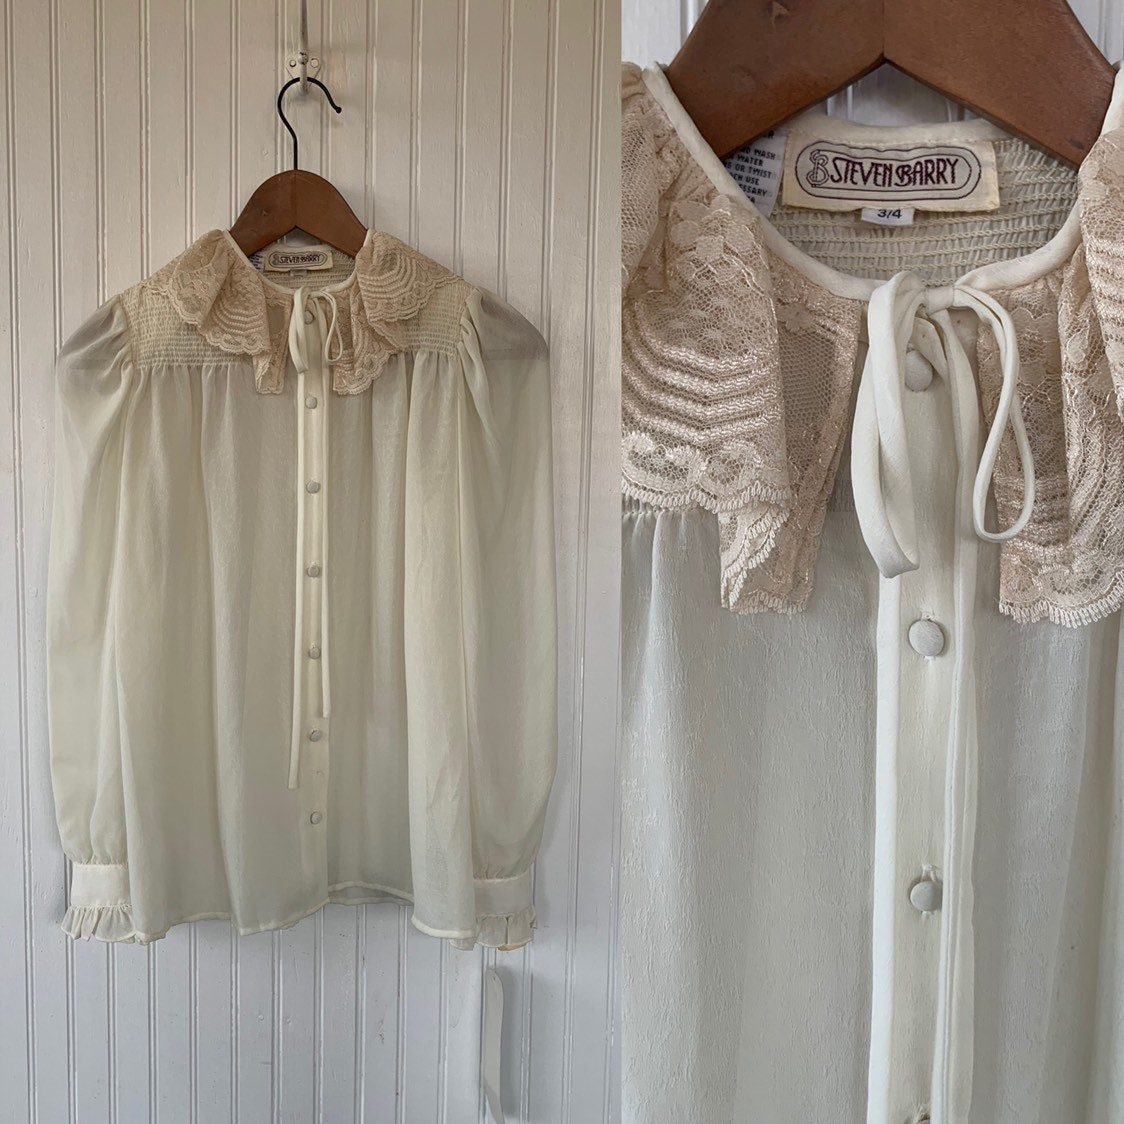 617056e1eabe7 NWT 80s Vintage Ivory Off White Puff Sleeve Lace Ruffle Sheer Shirt Size  Medium Button Down Shirt 70s Deadstock Boho M S Lace Small Top